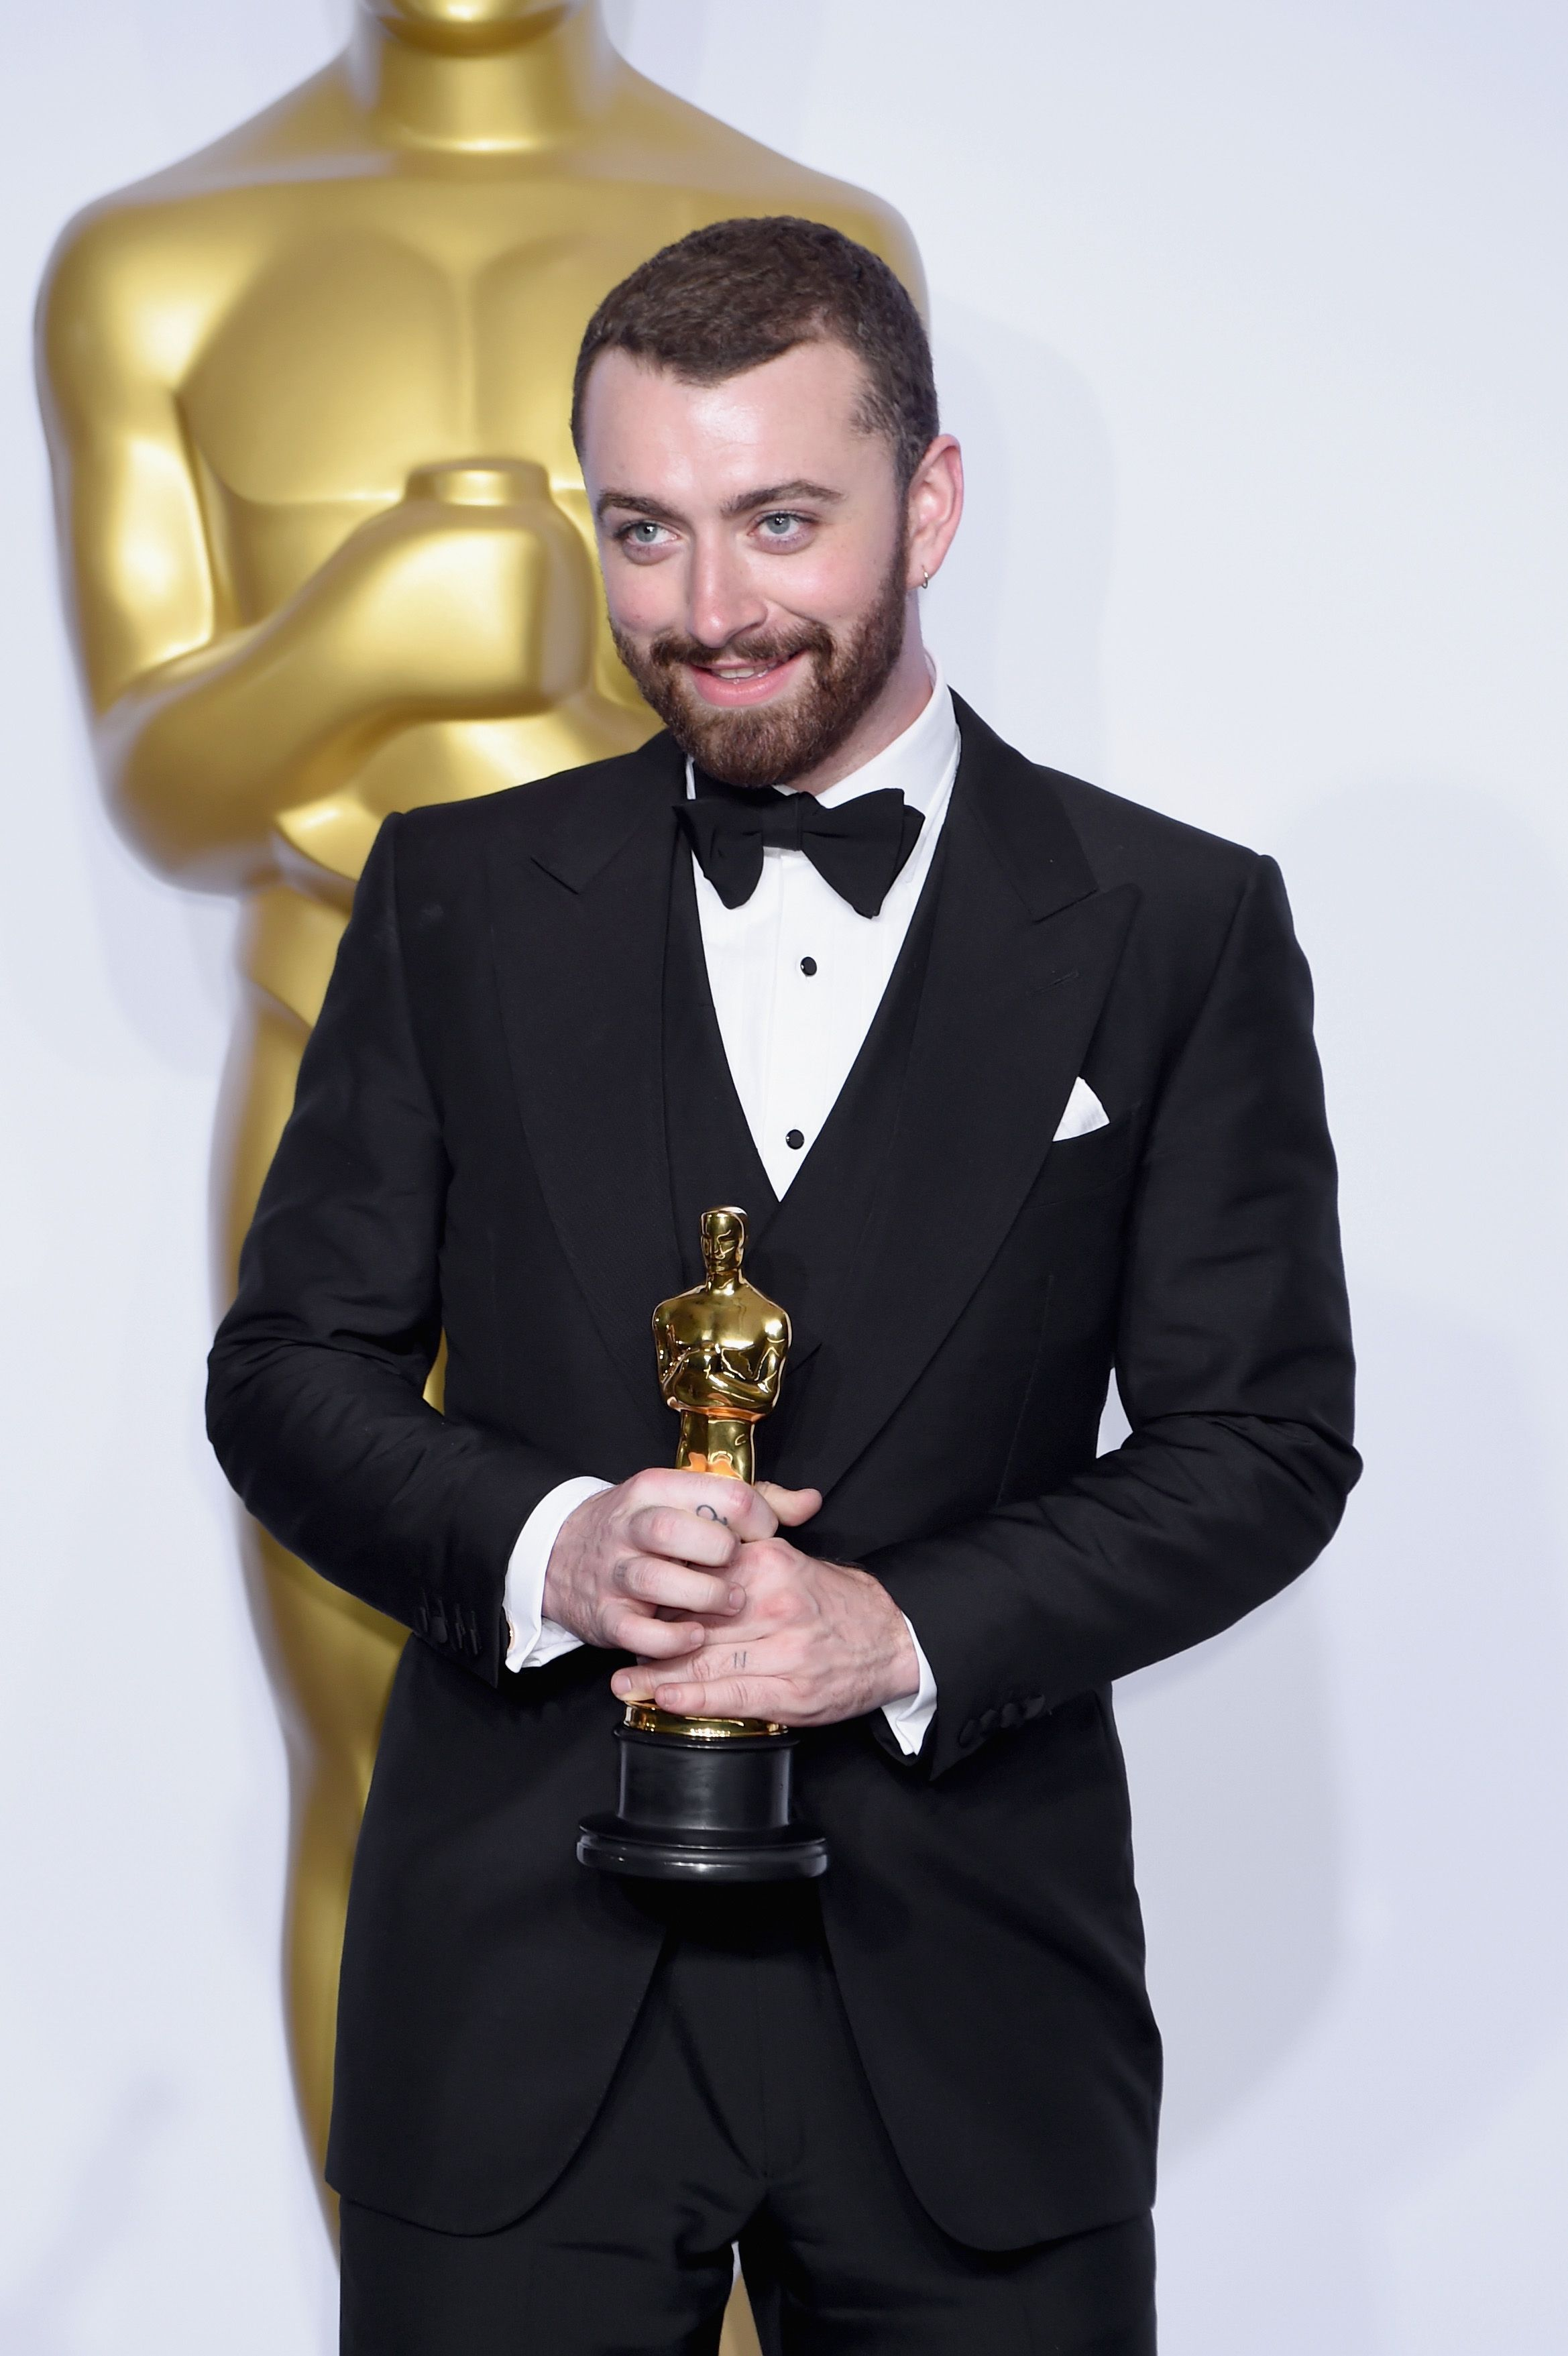 2016: When Sam Smith thought he was the first gay man to win an Oscar. During his acceptance speech, Smith hinted that he might have been the first openly gay man to receive an Oscar—but he was wrong.